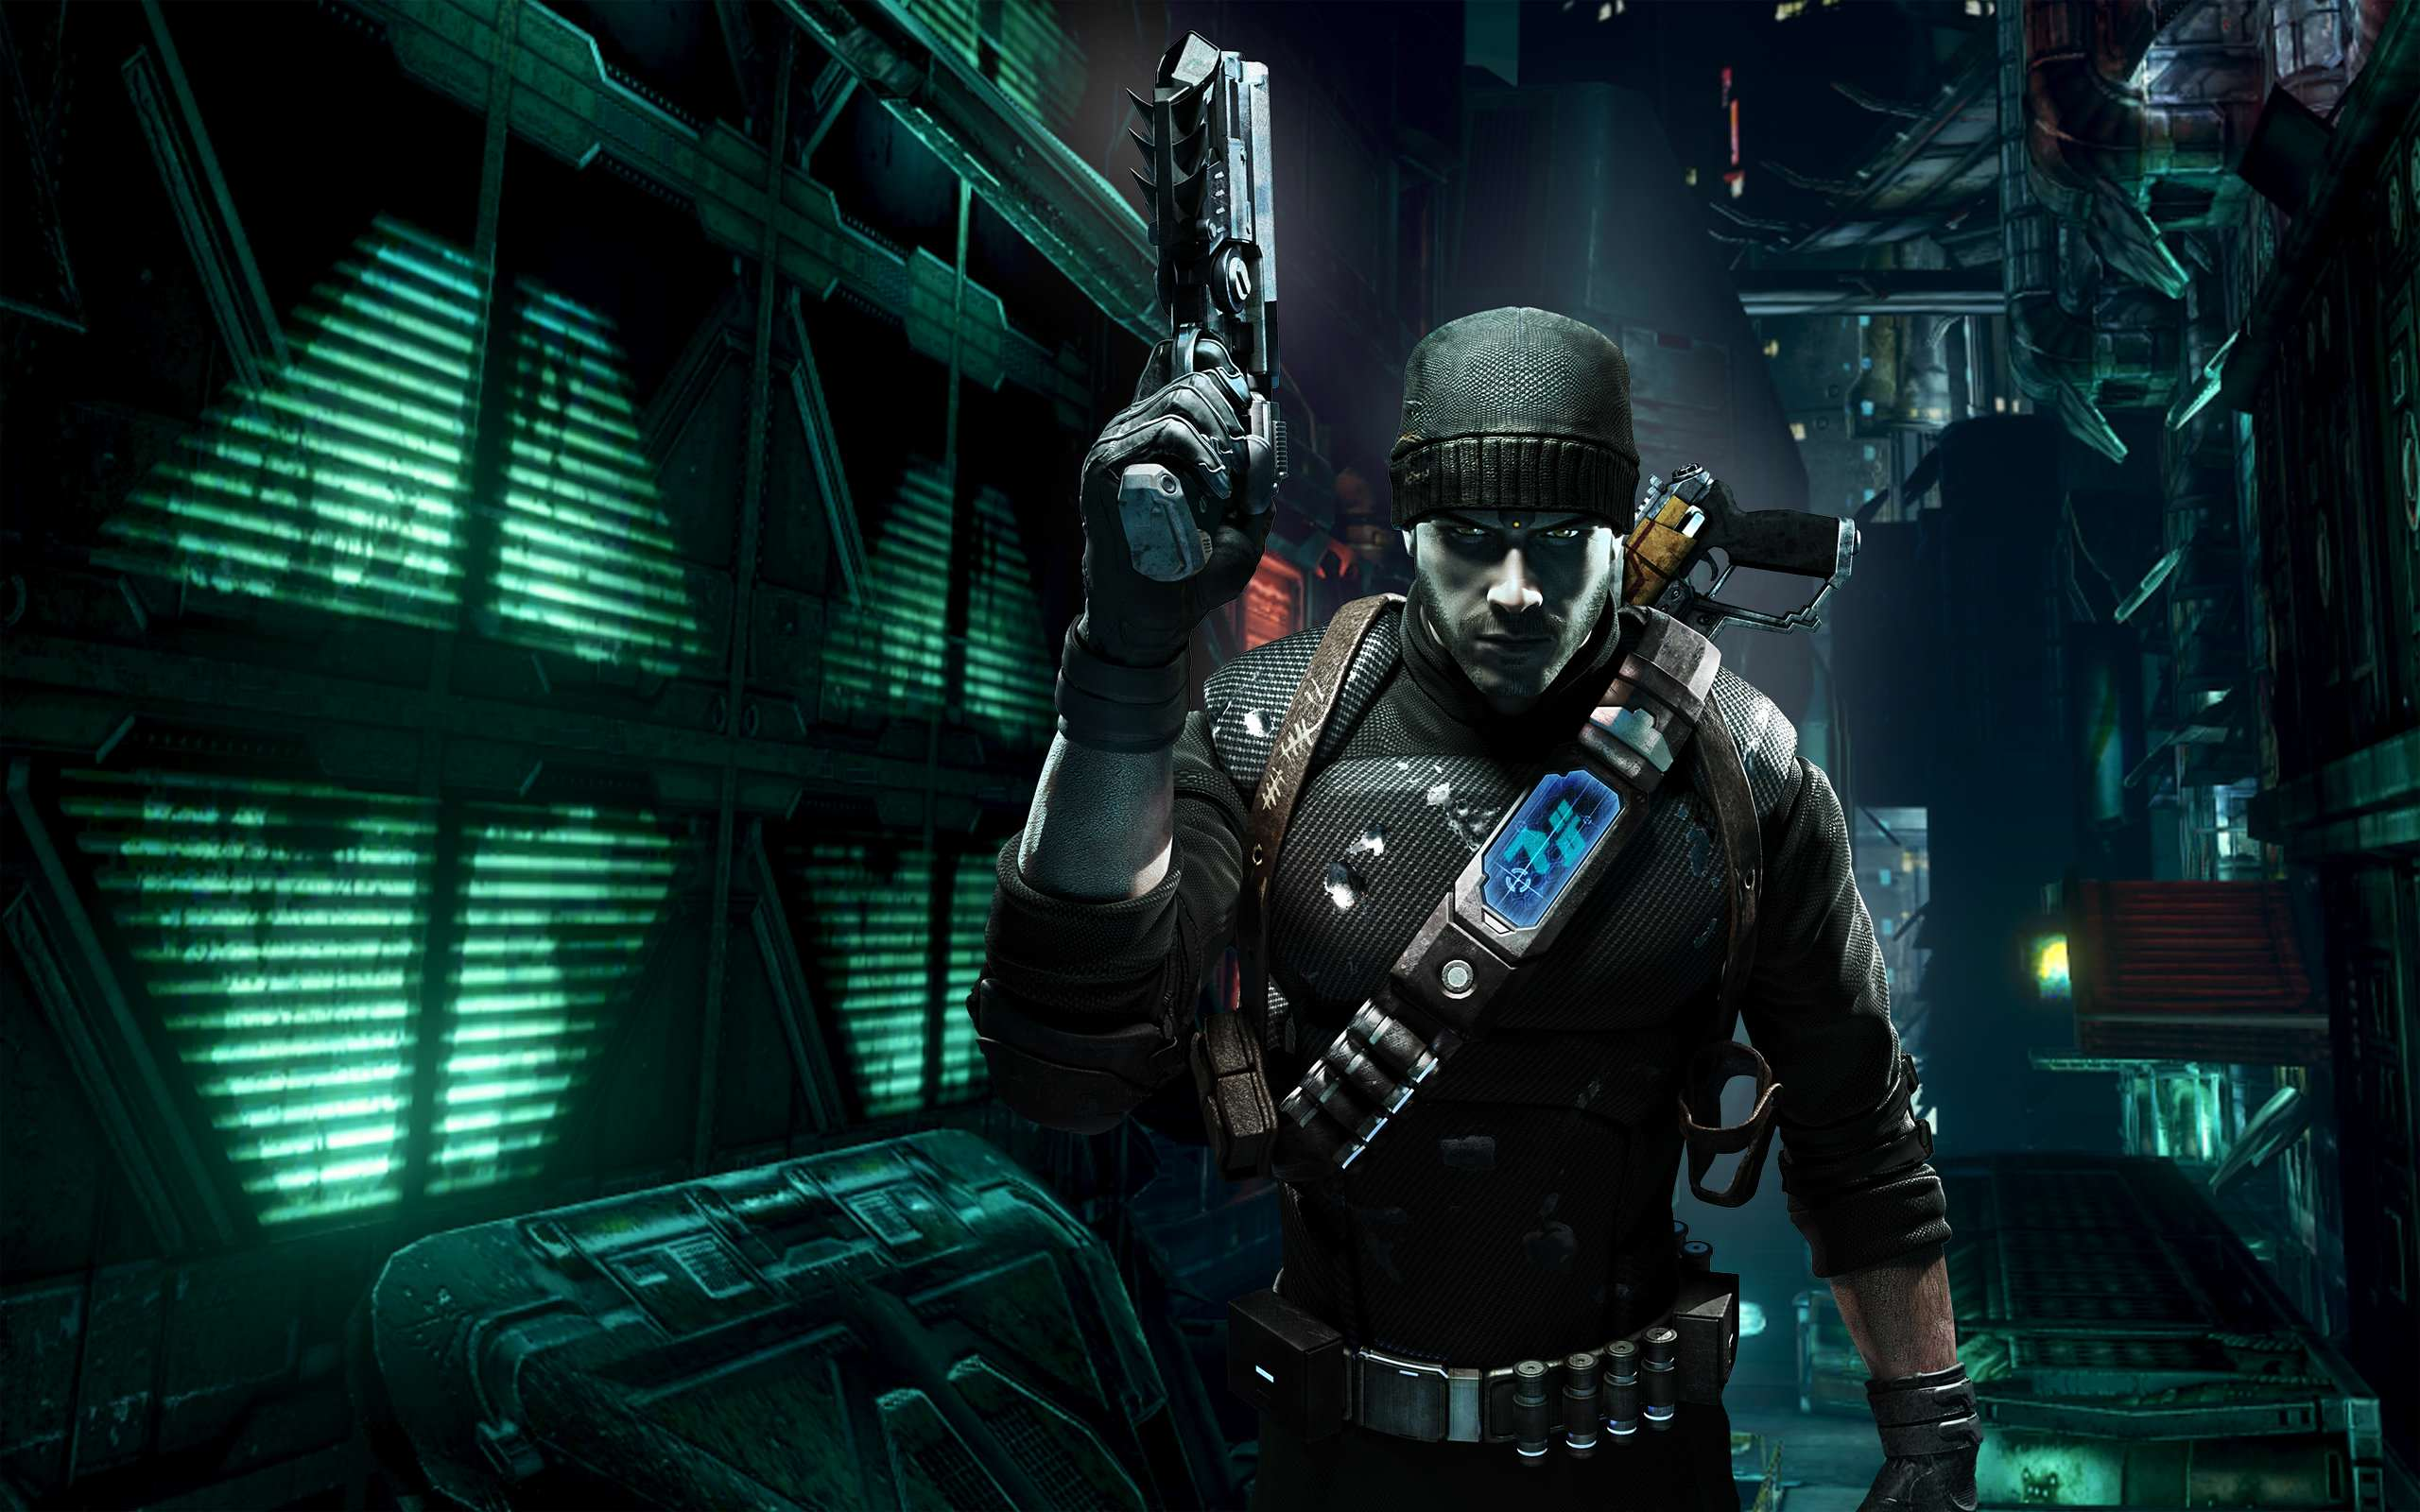 prey 2 wallpapers 1 Eight Cancelled Games That Were Painfully Close To Release